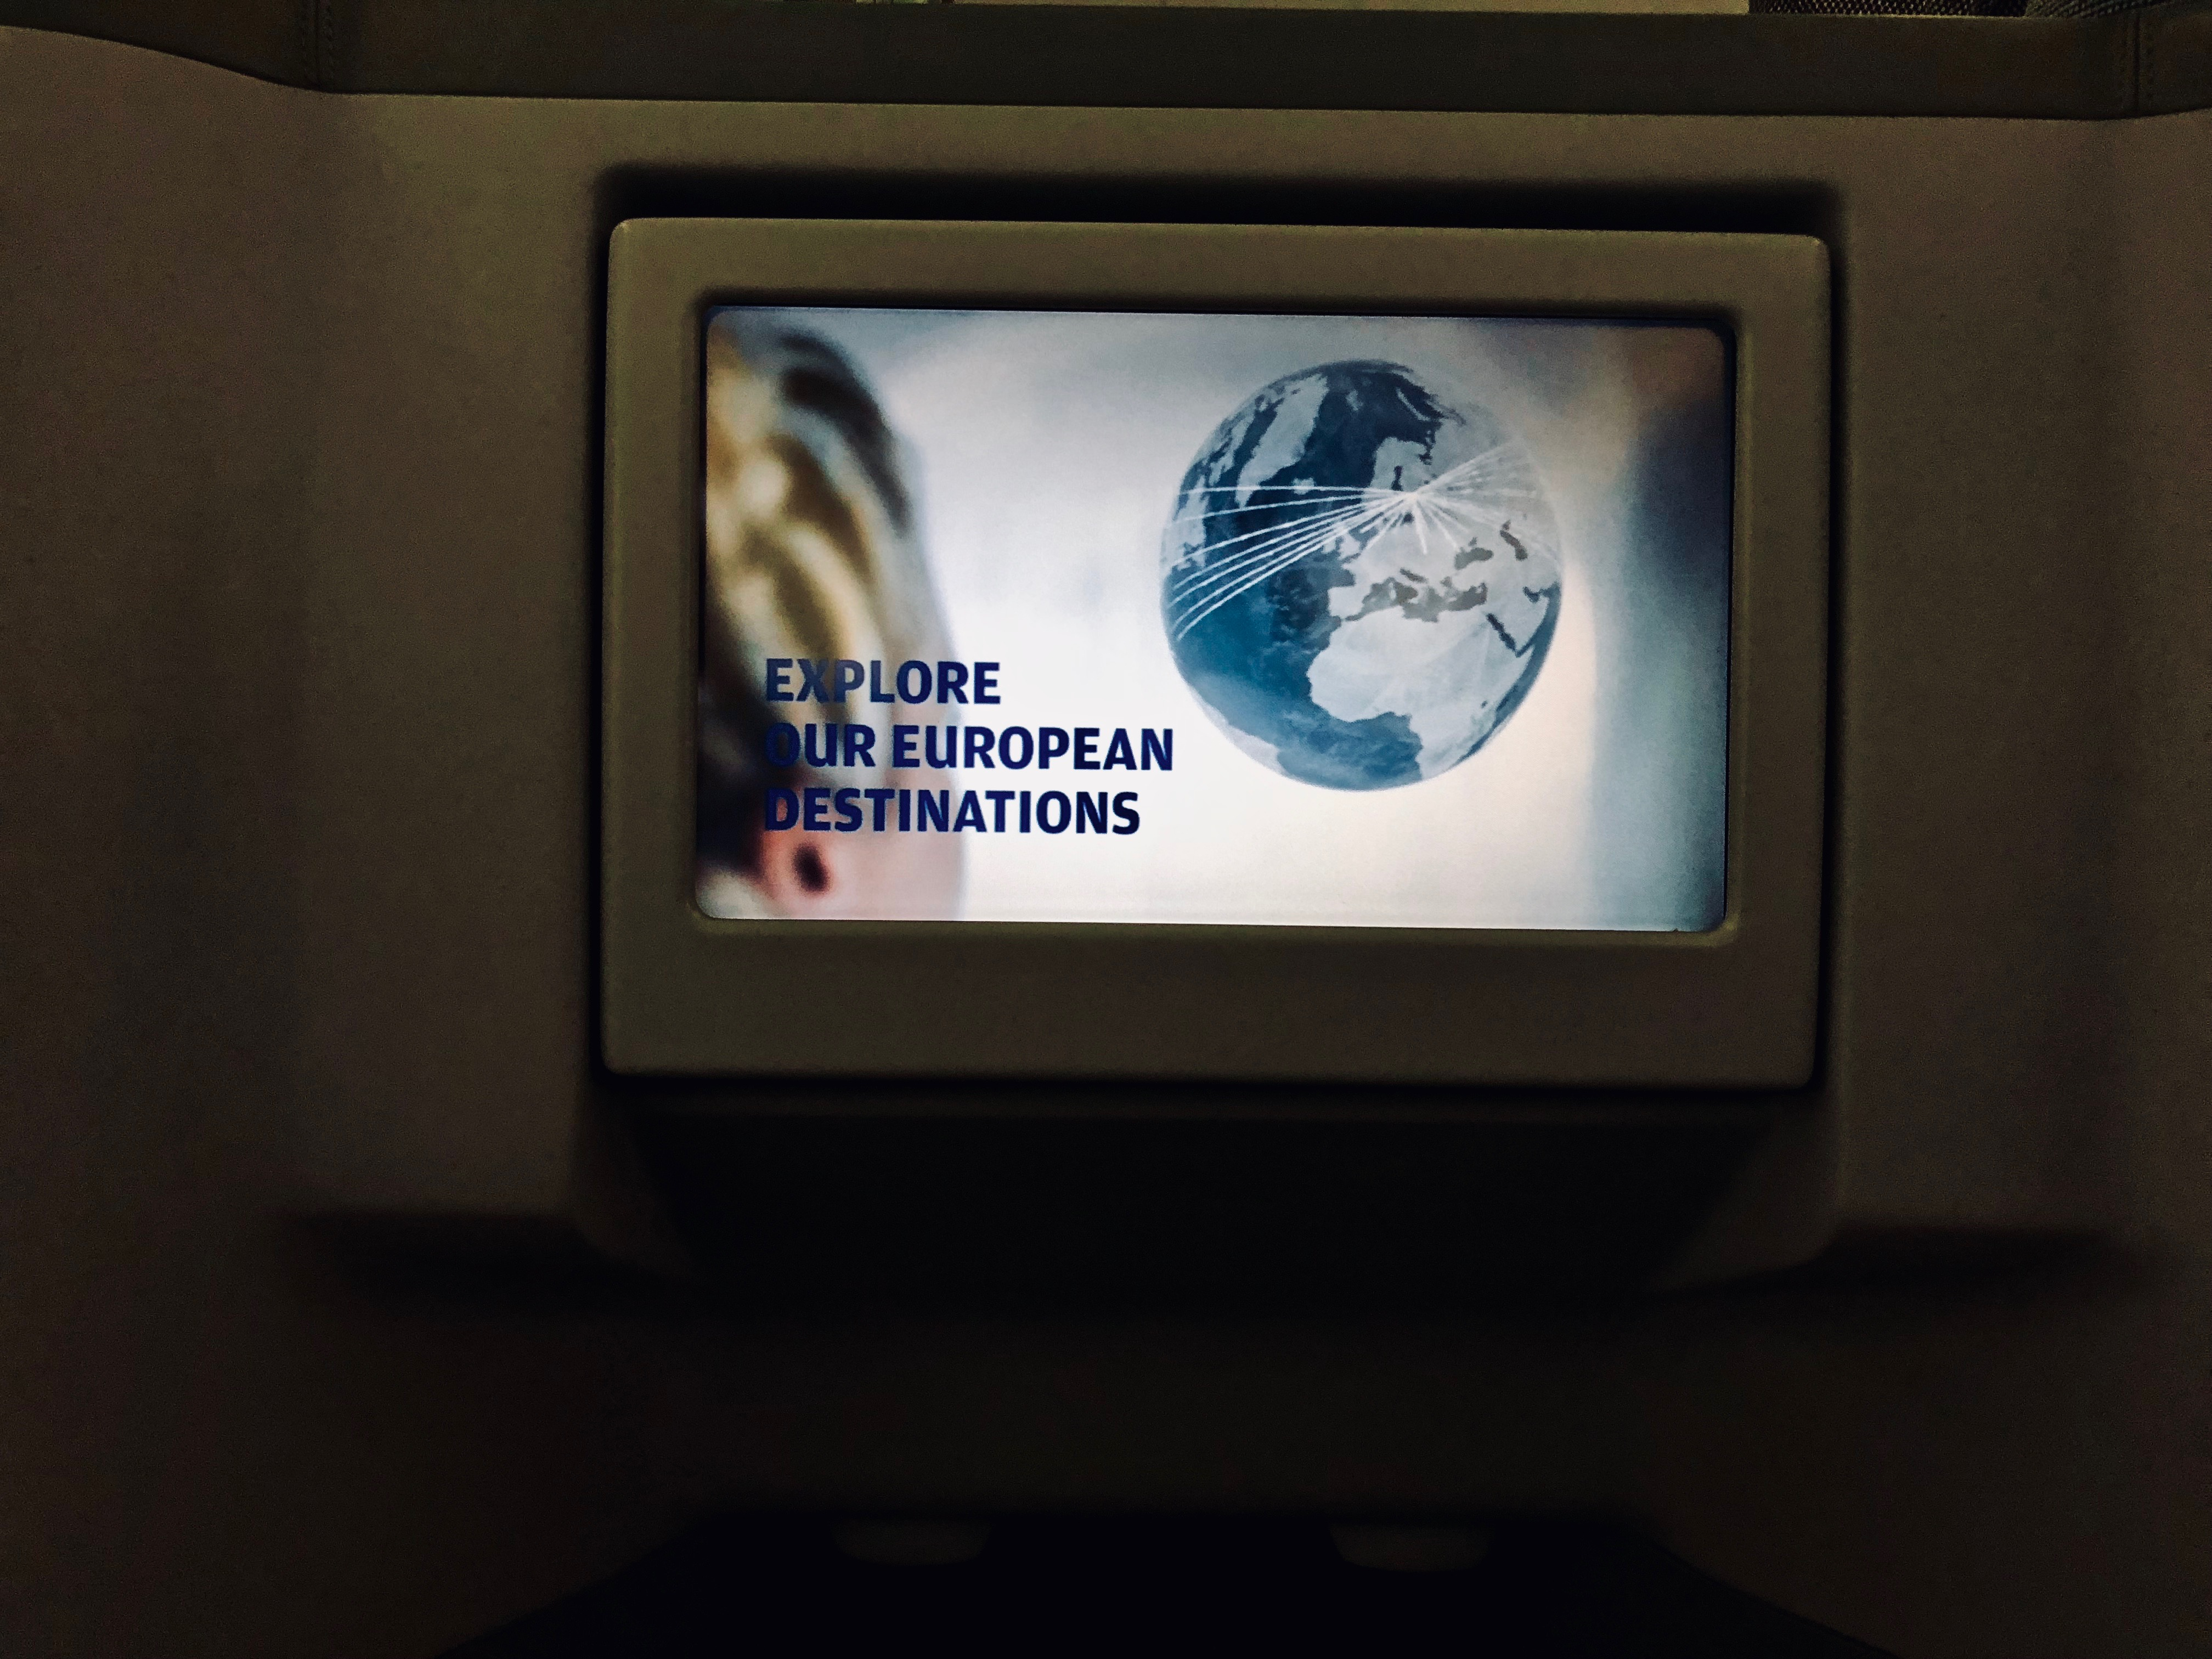 Finnair Business Class A330 screen